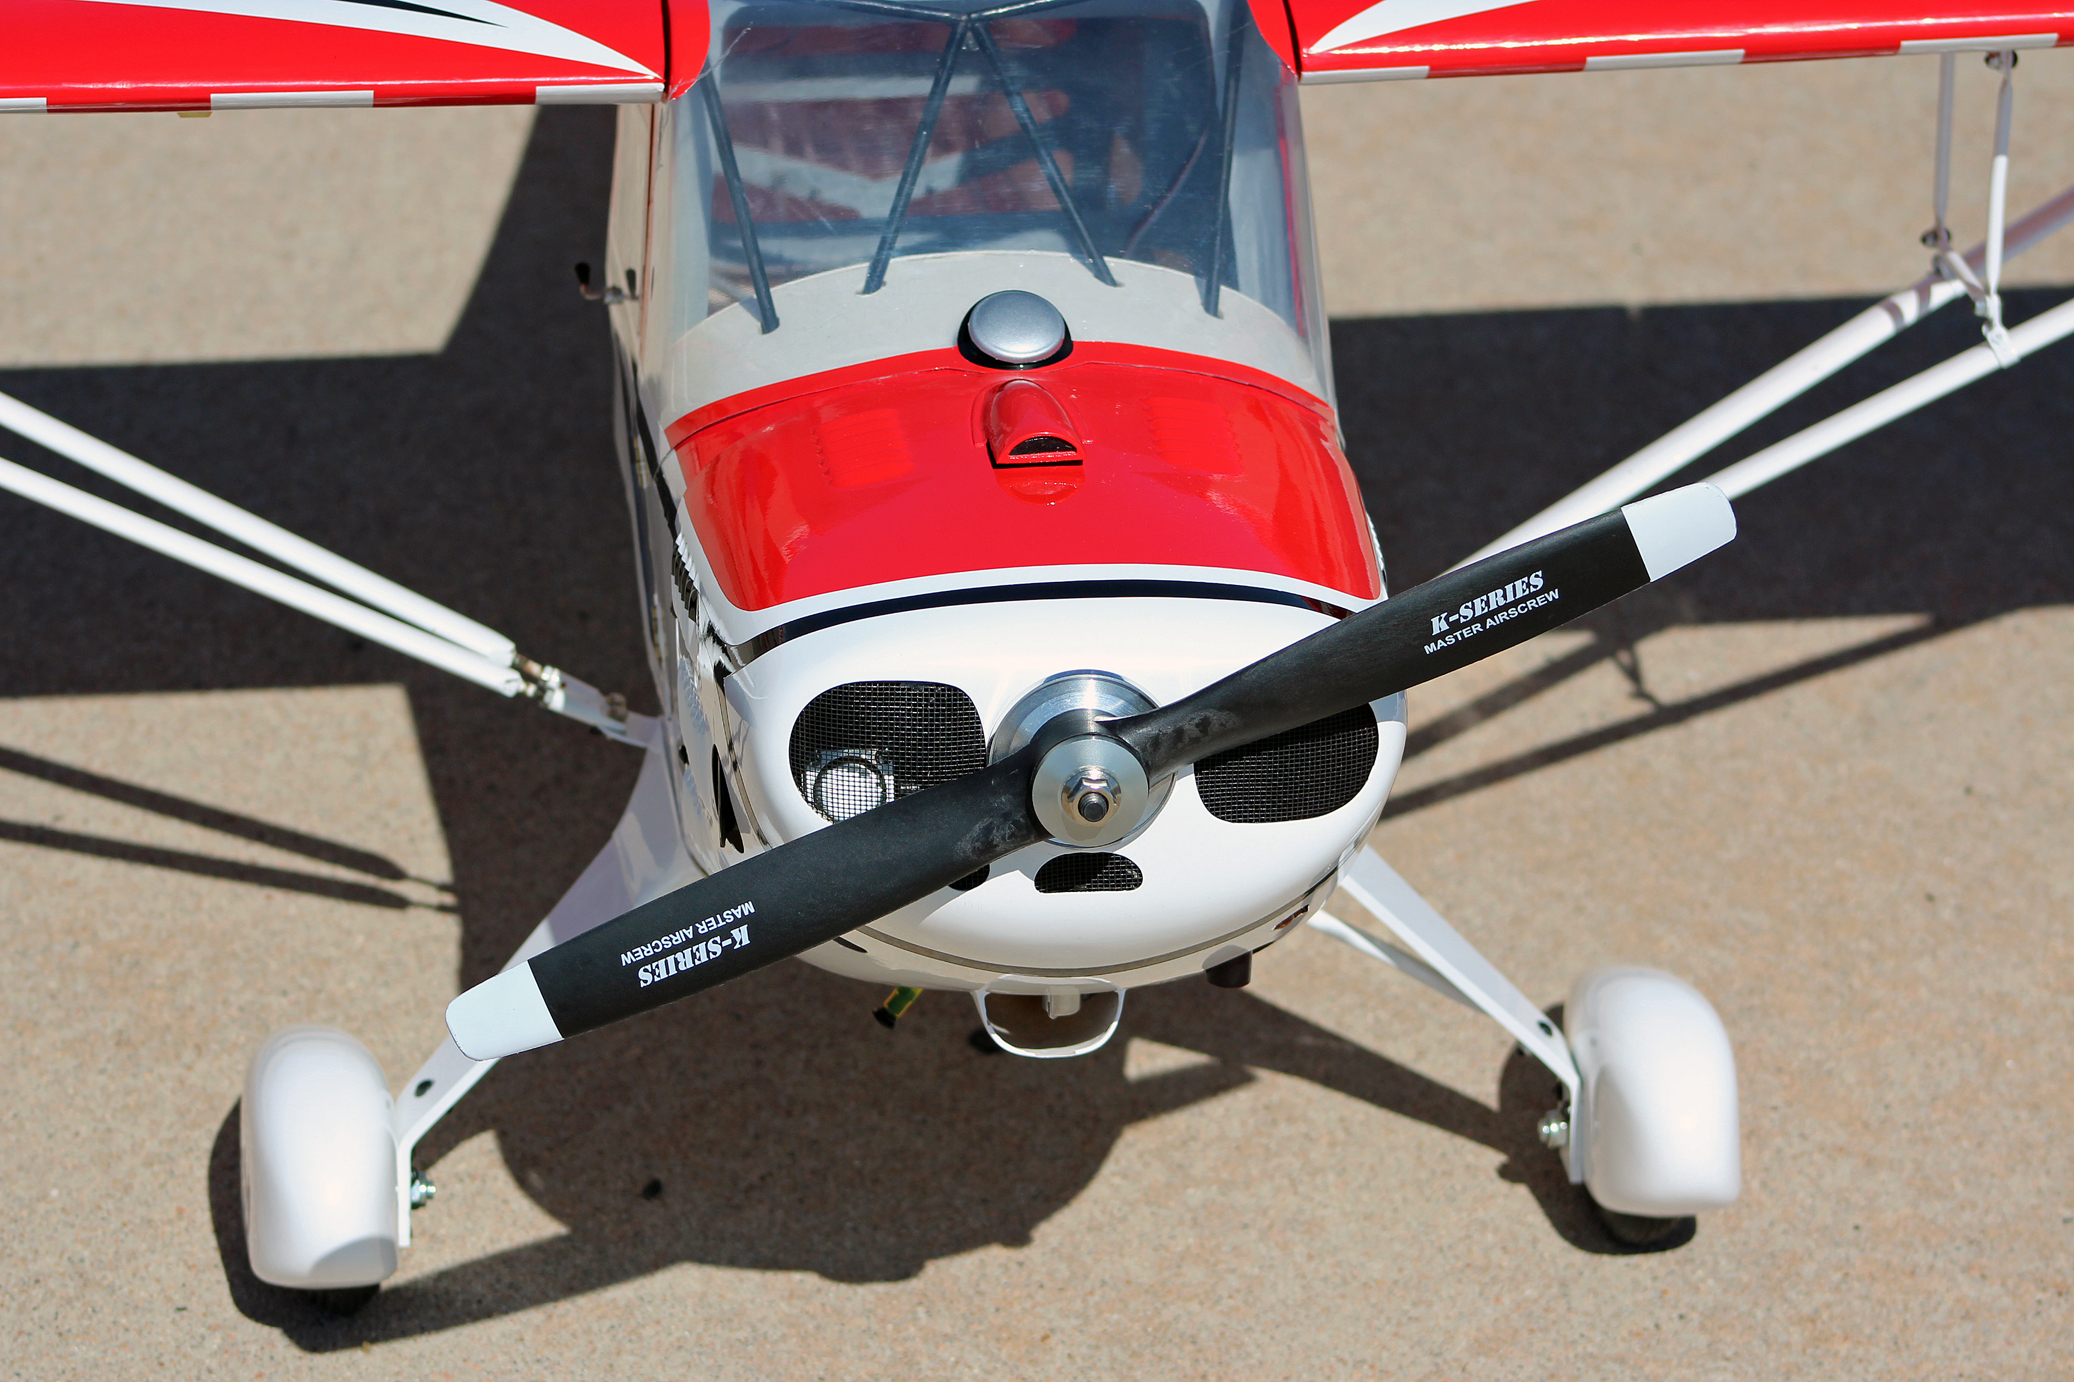 Click image for larger version  Name:Taylorcraft9.jpg Views:41 Size:1.76 MB ID:2156096